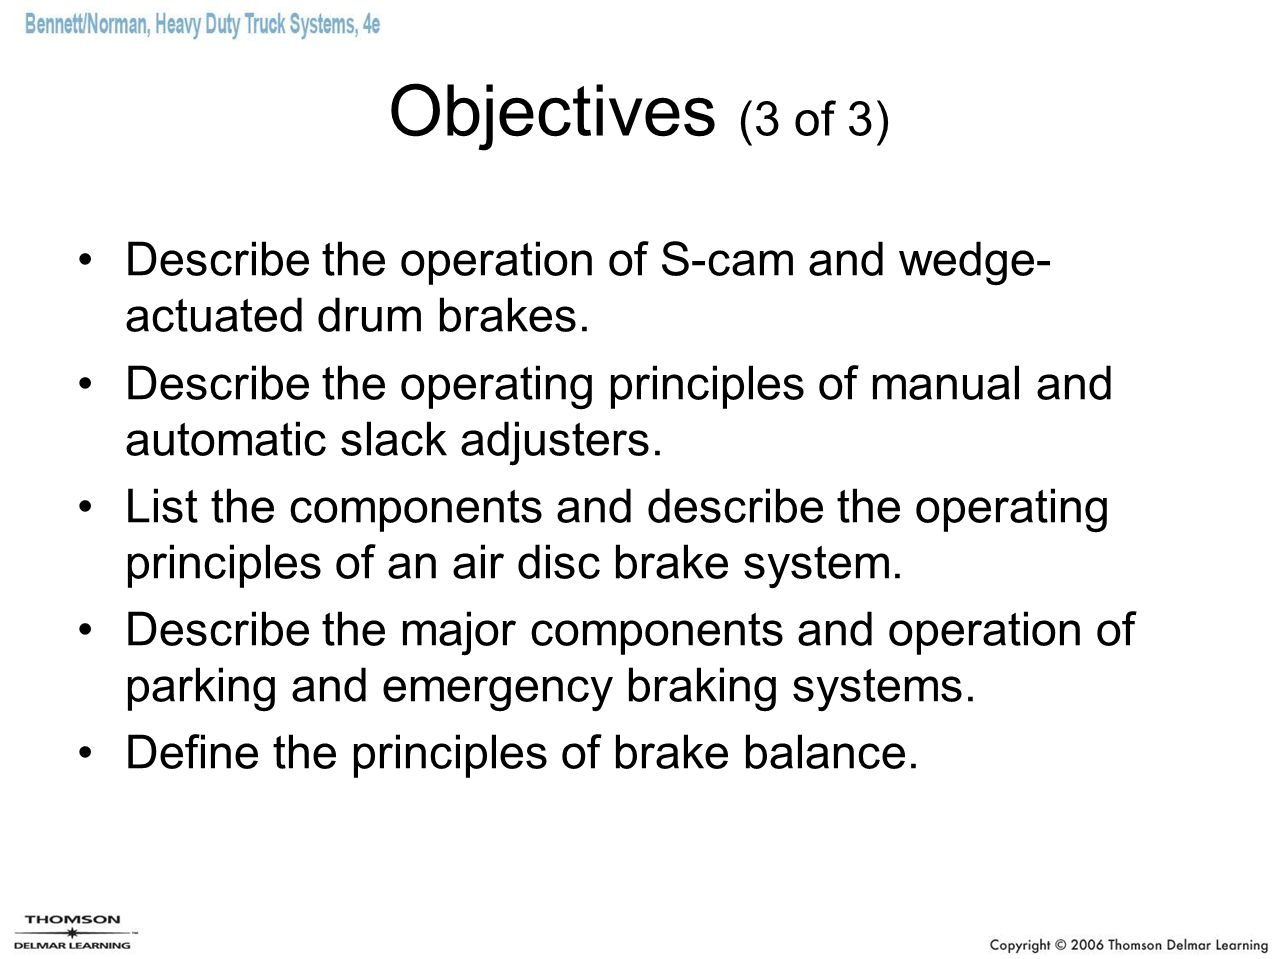 Objectives (3 of 3) Describe the operation of S-cam and wedge-actuated drum brakes.